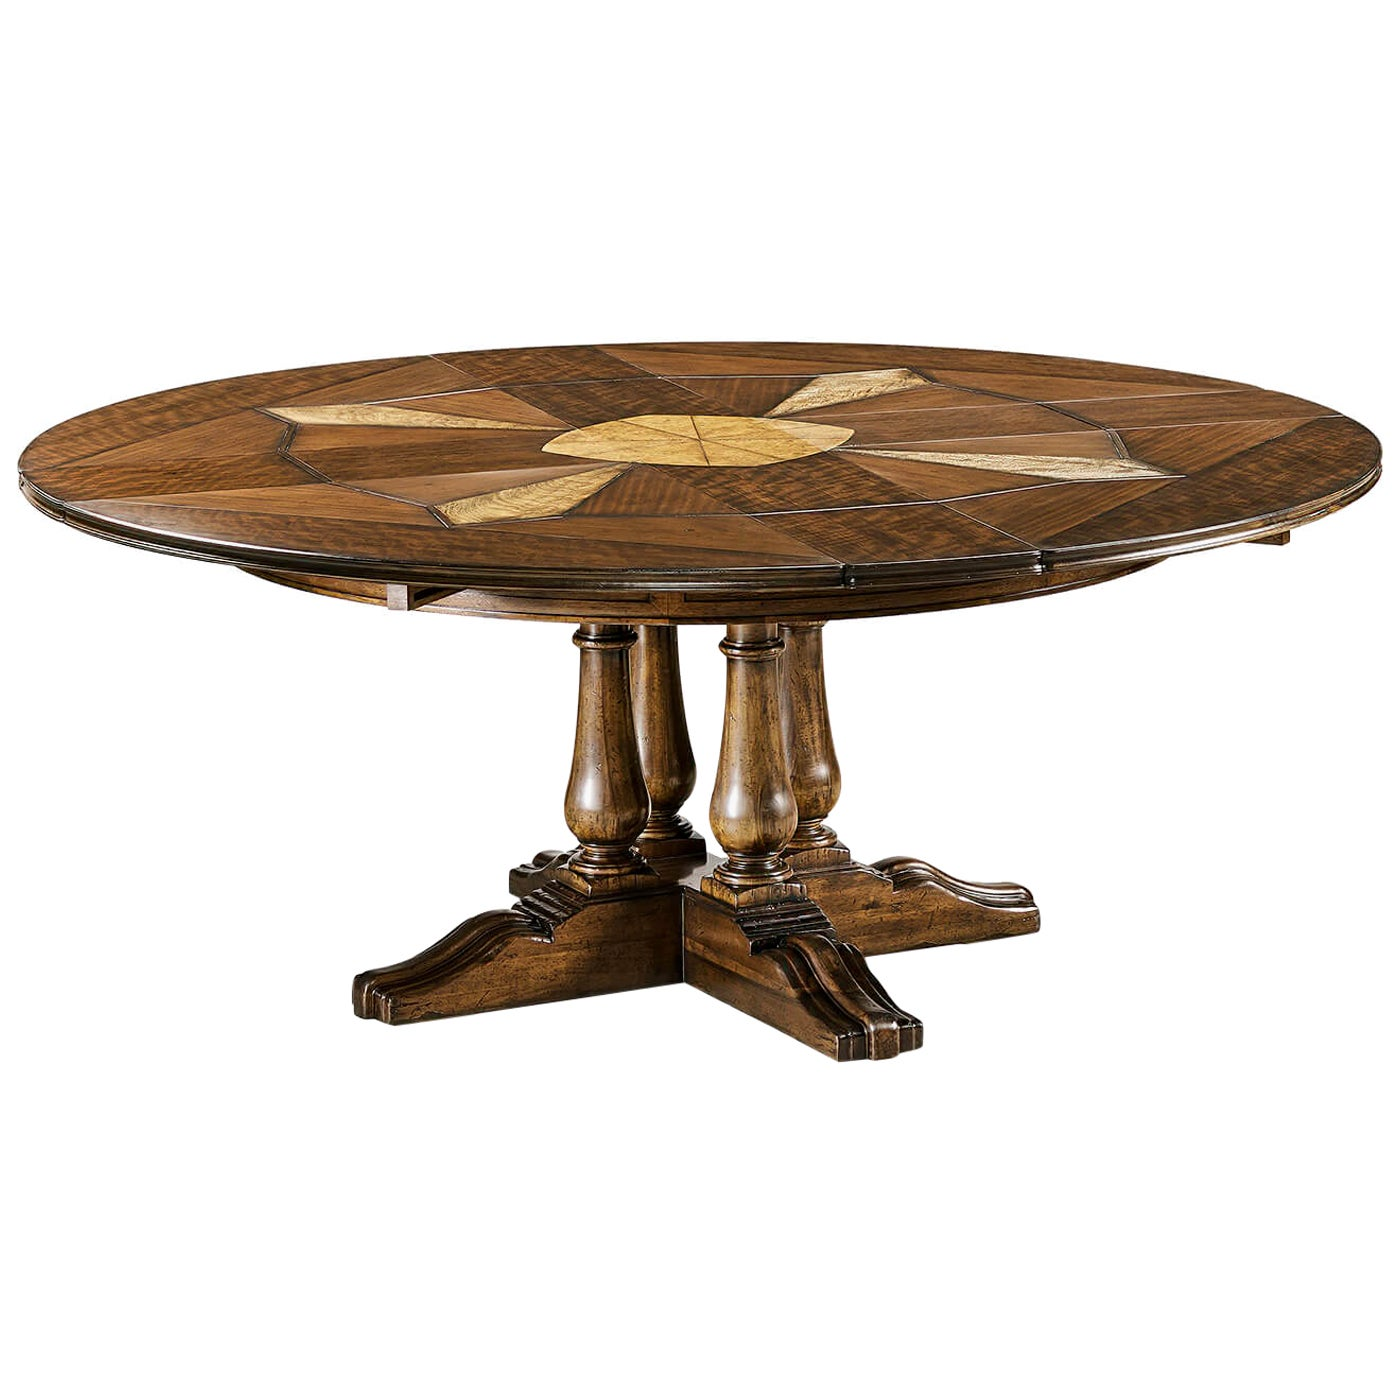 French Provincial Round Extension Dining Table